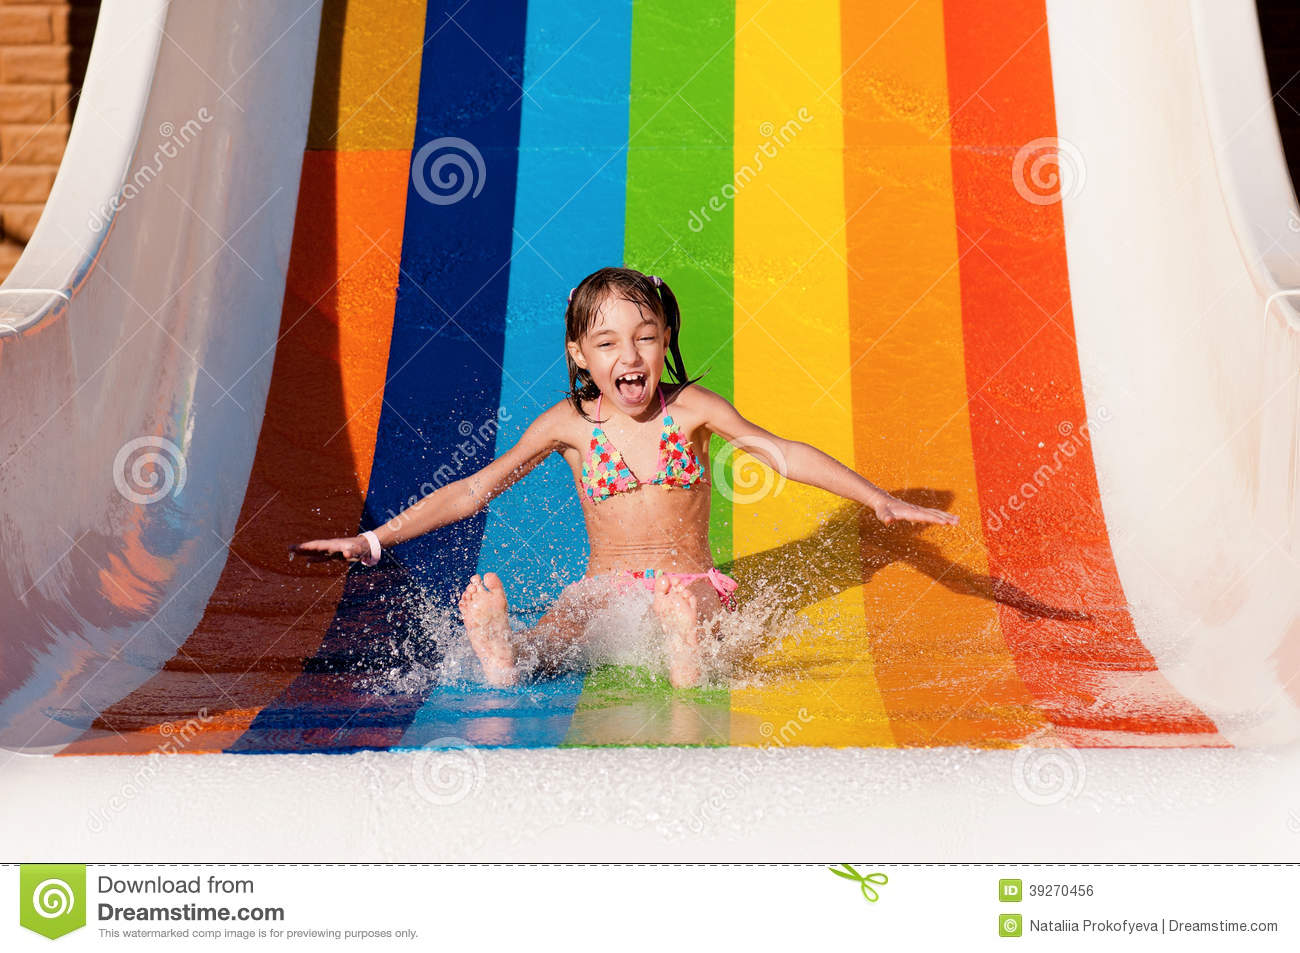 Wonderful Young Girl Going Down A Waterslide On Her Tummy